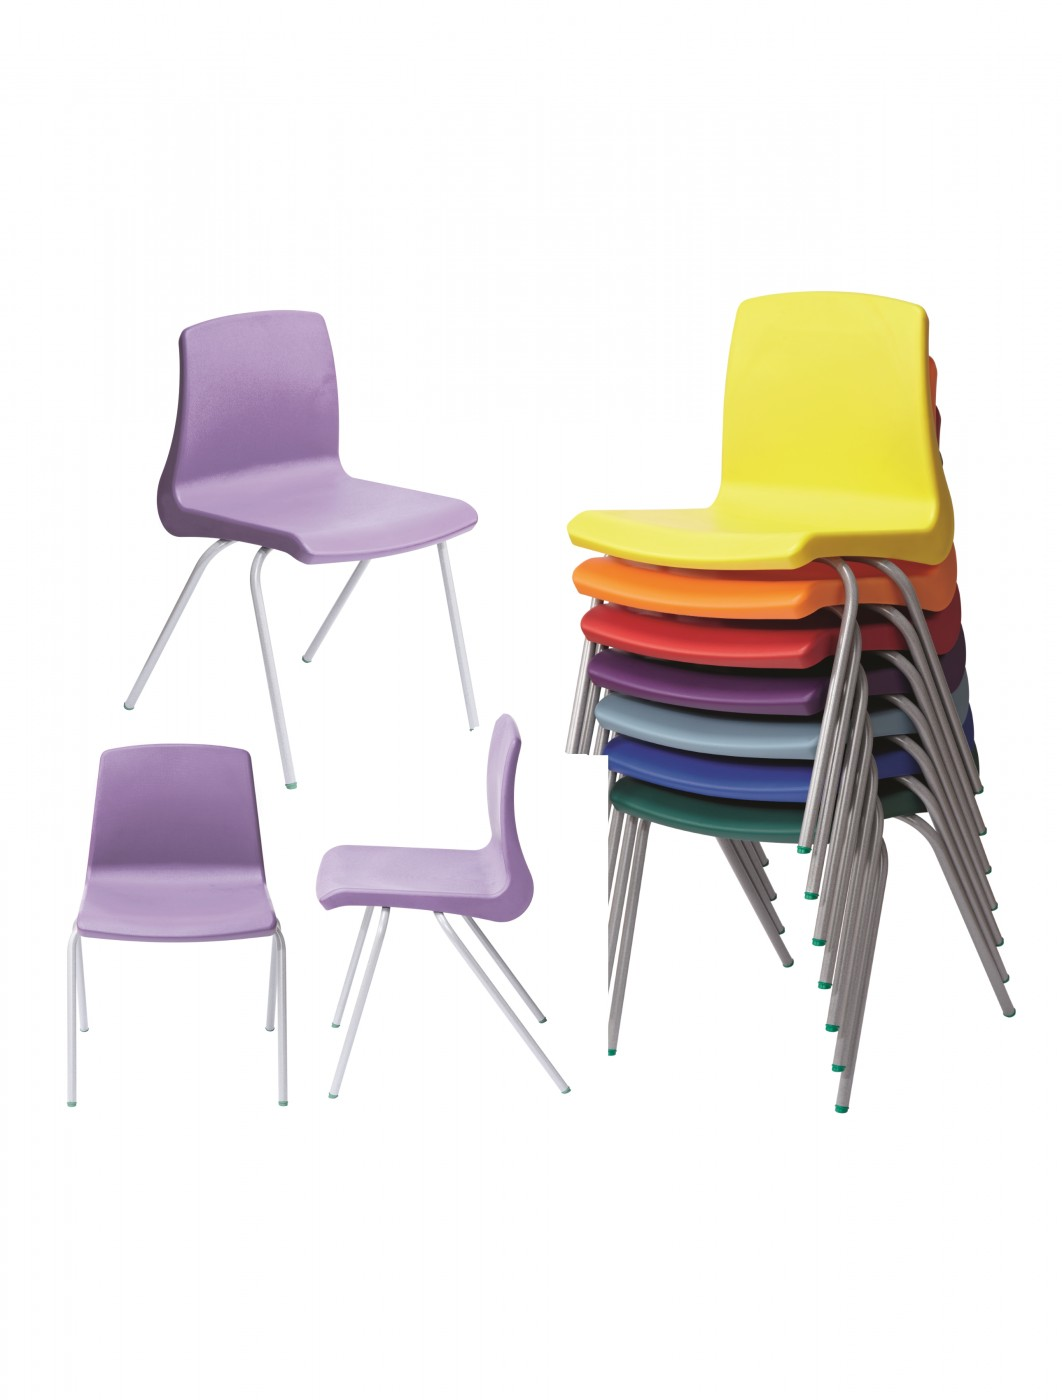 Metalliform NP Chairs   Age 14+ Years Polypropylene Classroom Chairs NP6    Enlarged View